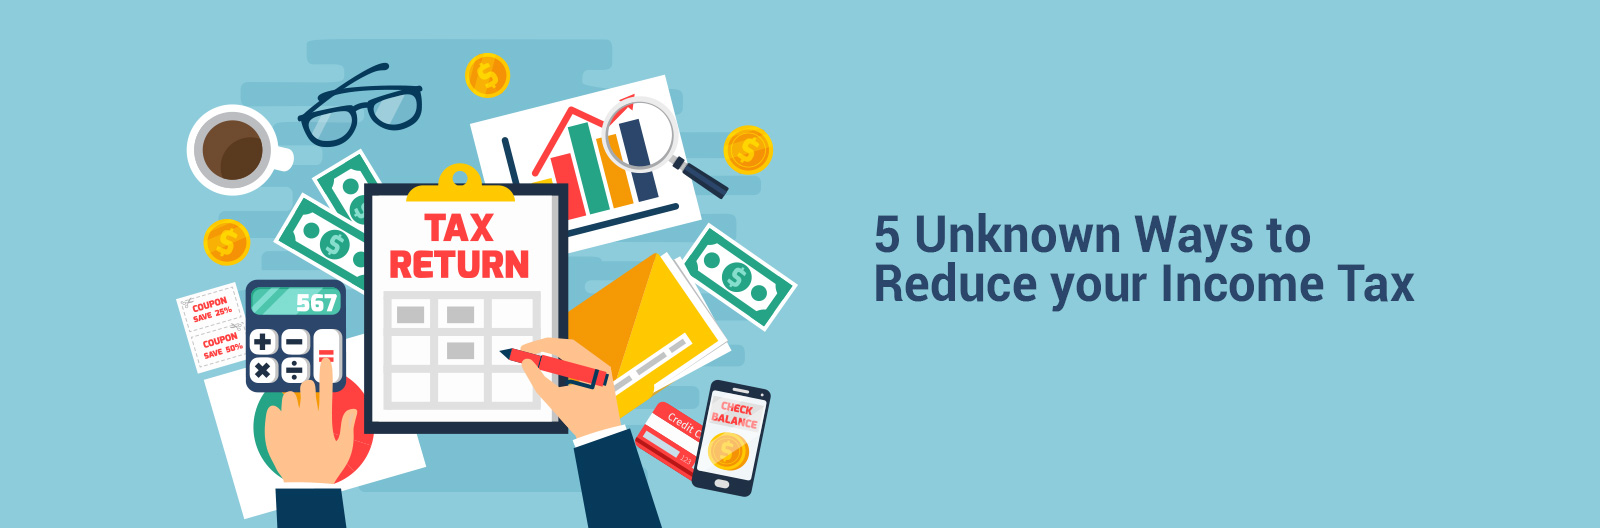 5 unknown ways to reduce your income tax